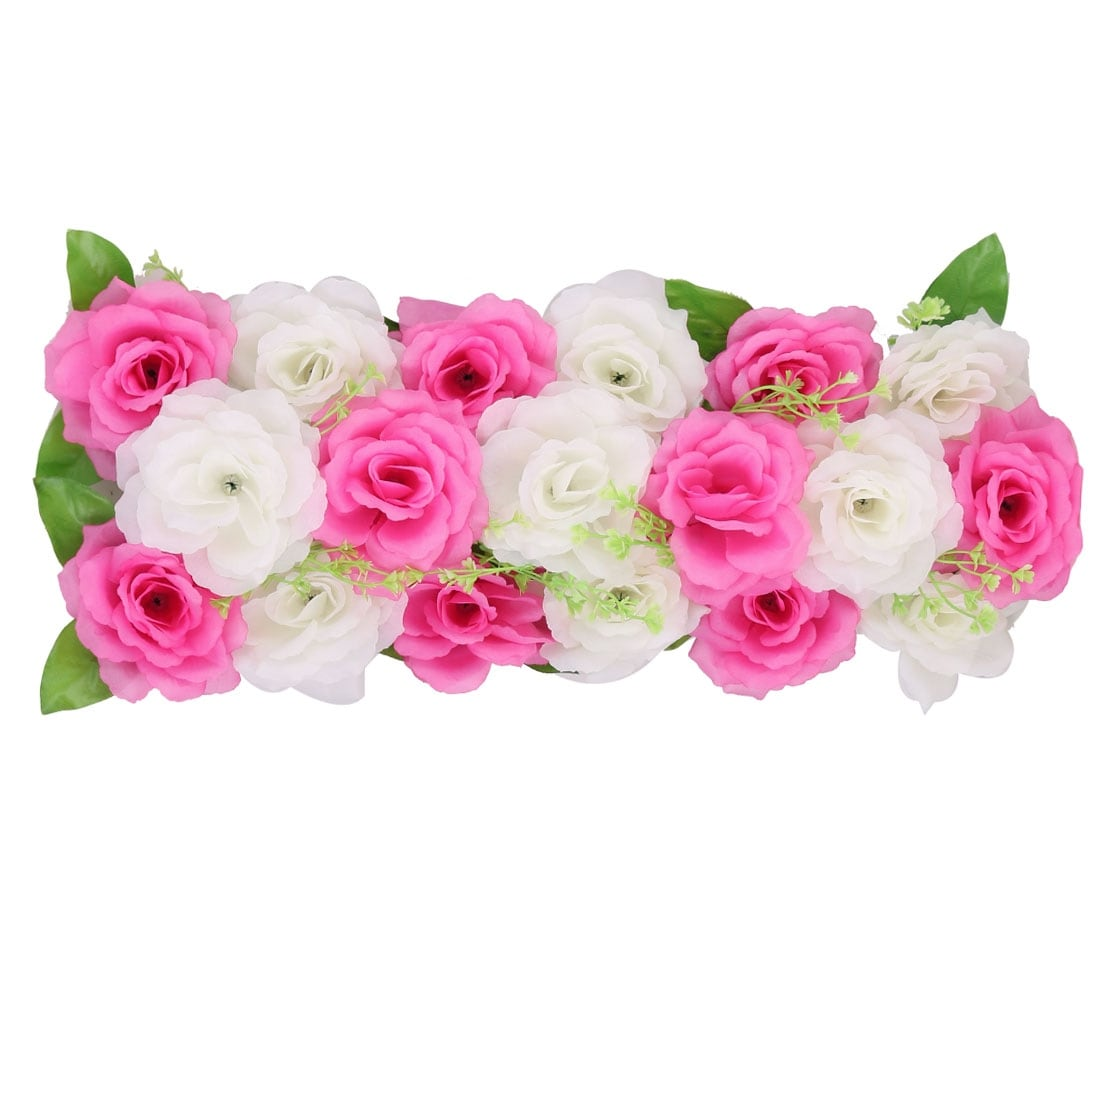 Wedding Party Fabric Diy Wall Arch Hanging Artificial Flower Garland Decor Dark Pink White On Sale Overstock 28960915